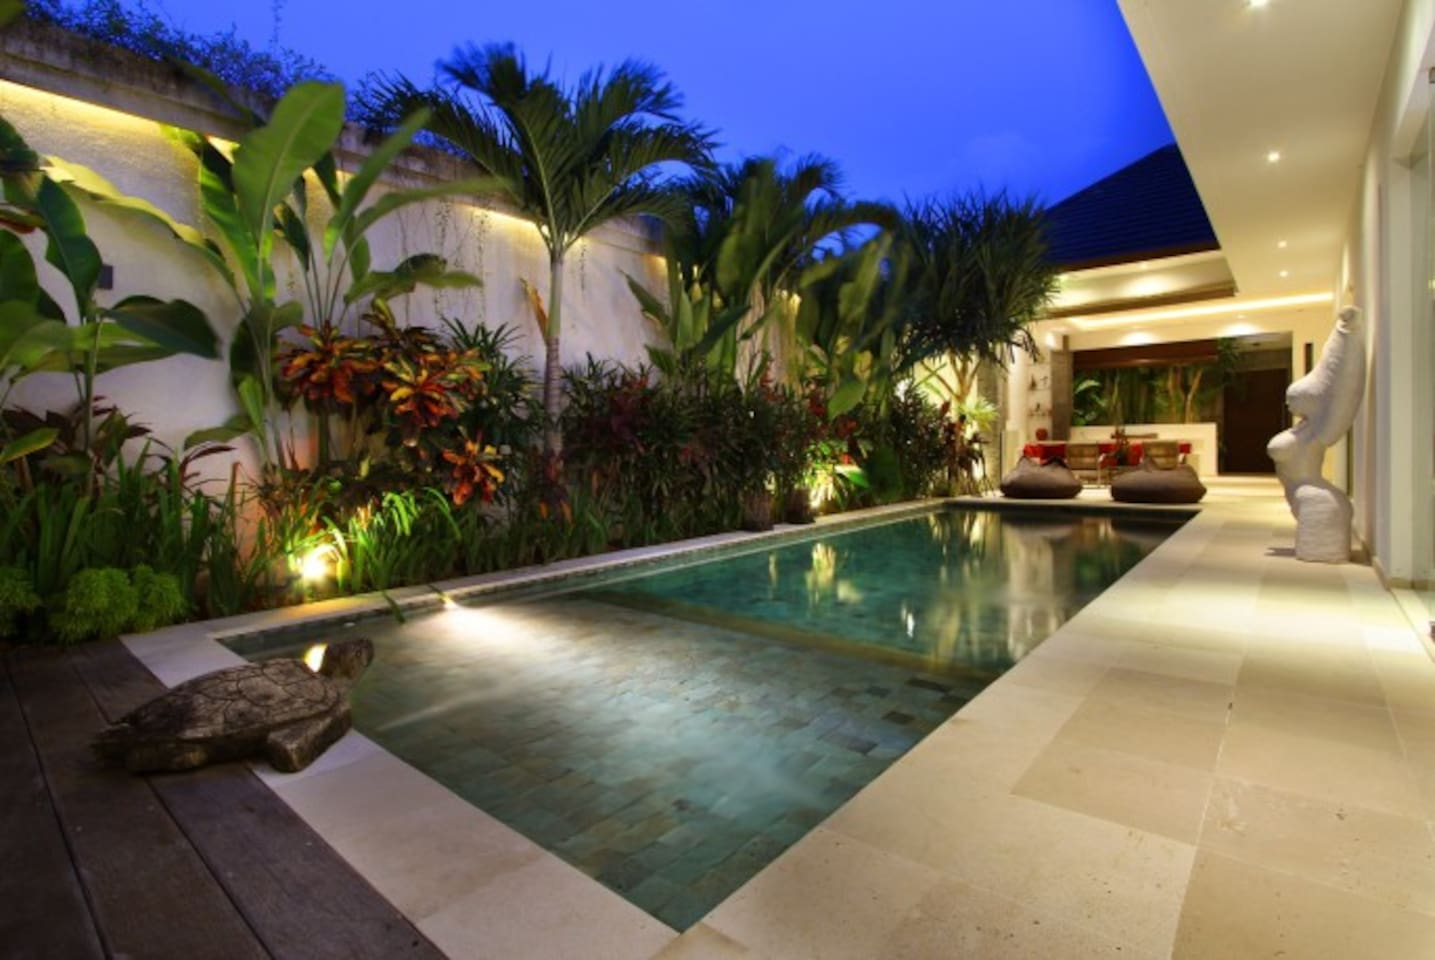 Pool view. Look at this beautiful tropical garden!